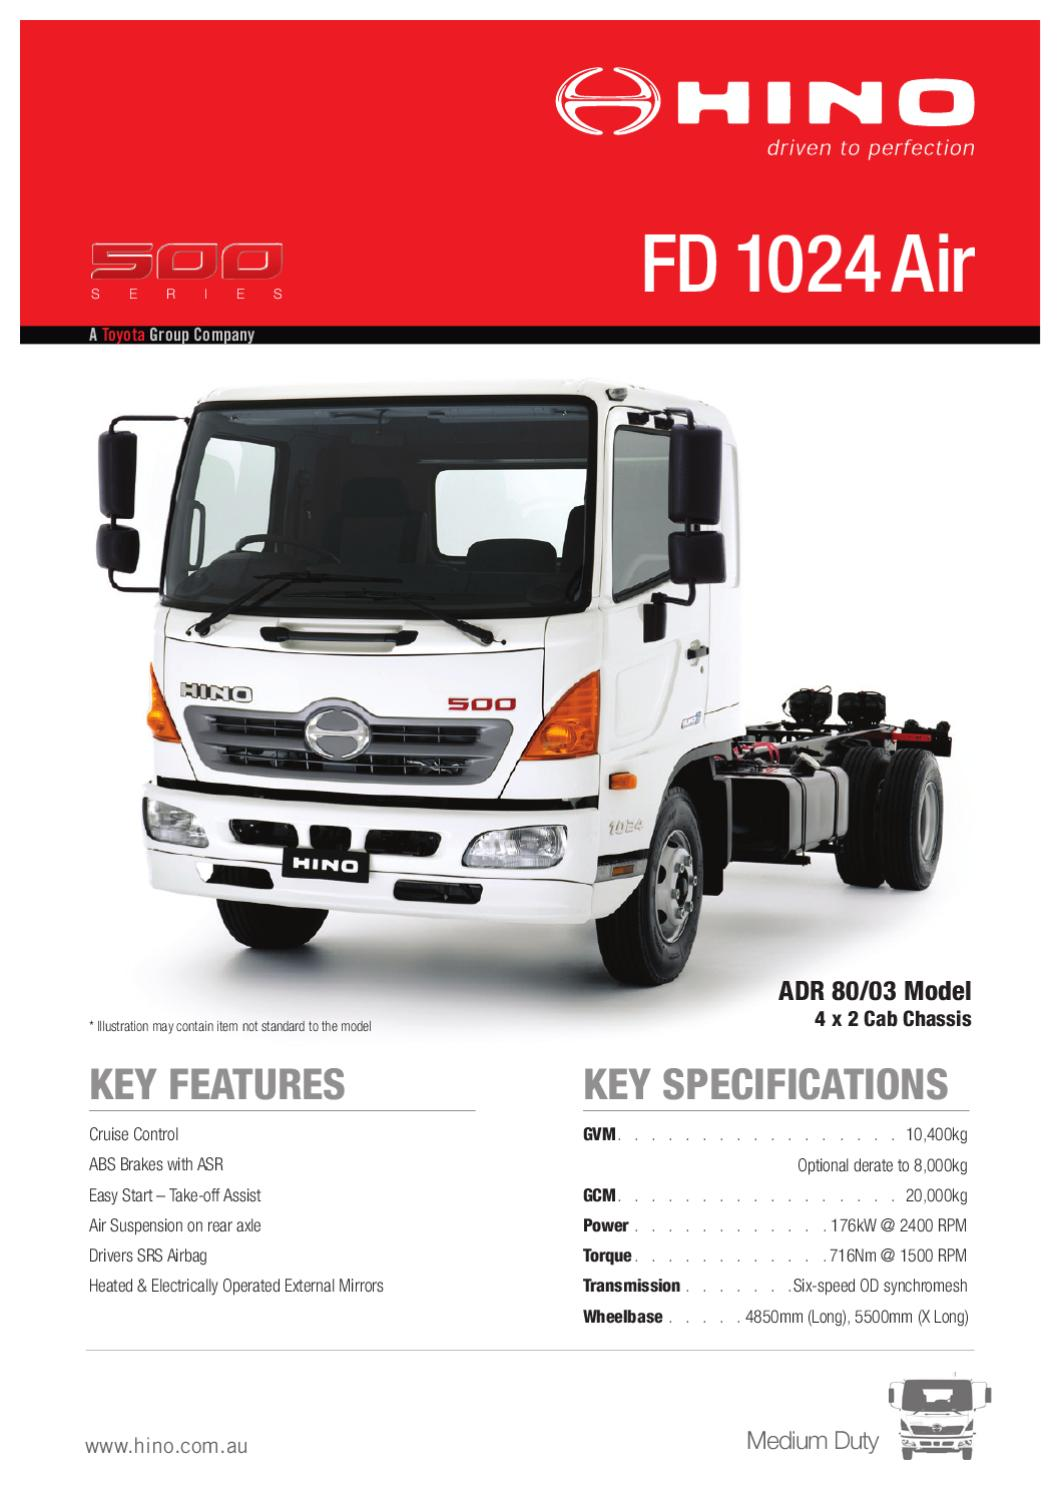 Hino 500 Series FD 1024 Air Spec Sheet by Justin Edwards - issuu